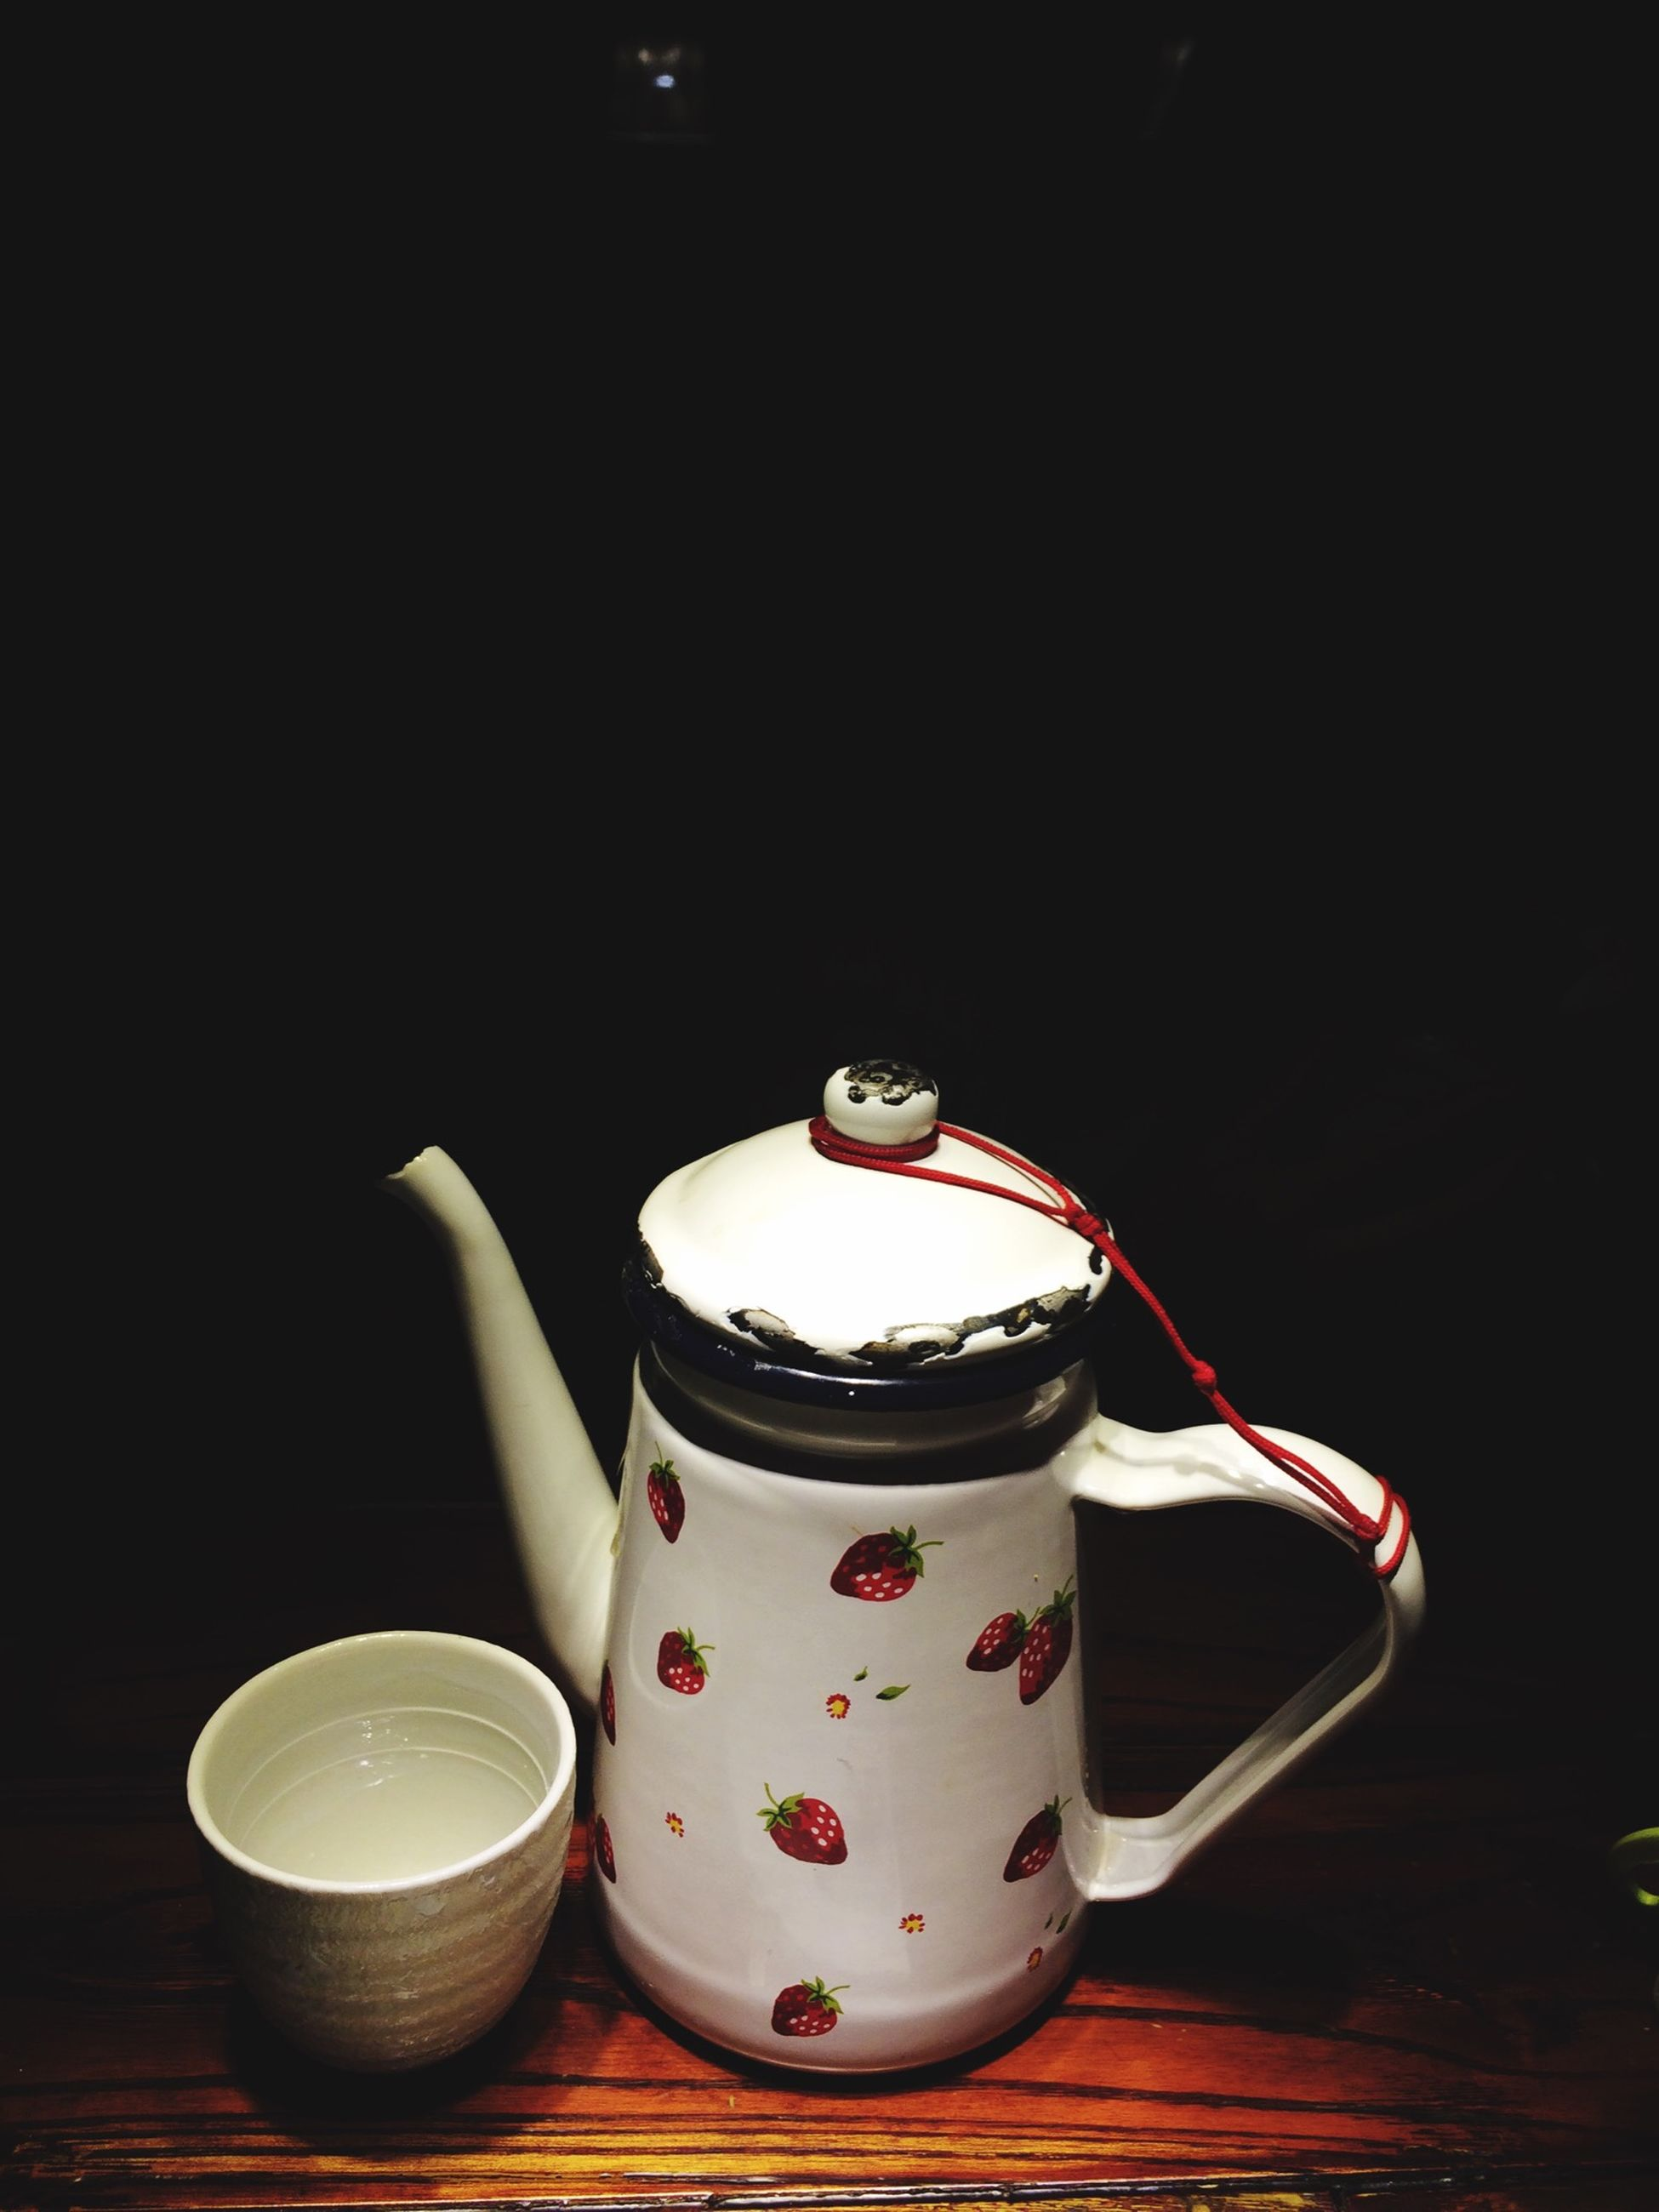 indoors, table, still life, candle, illuminated, food and drink, close-up, flame, lit, coffee cup, black background, drink, home interior, no people, burning, cup, wood - material, red, heat - temperature, dark